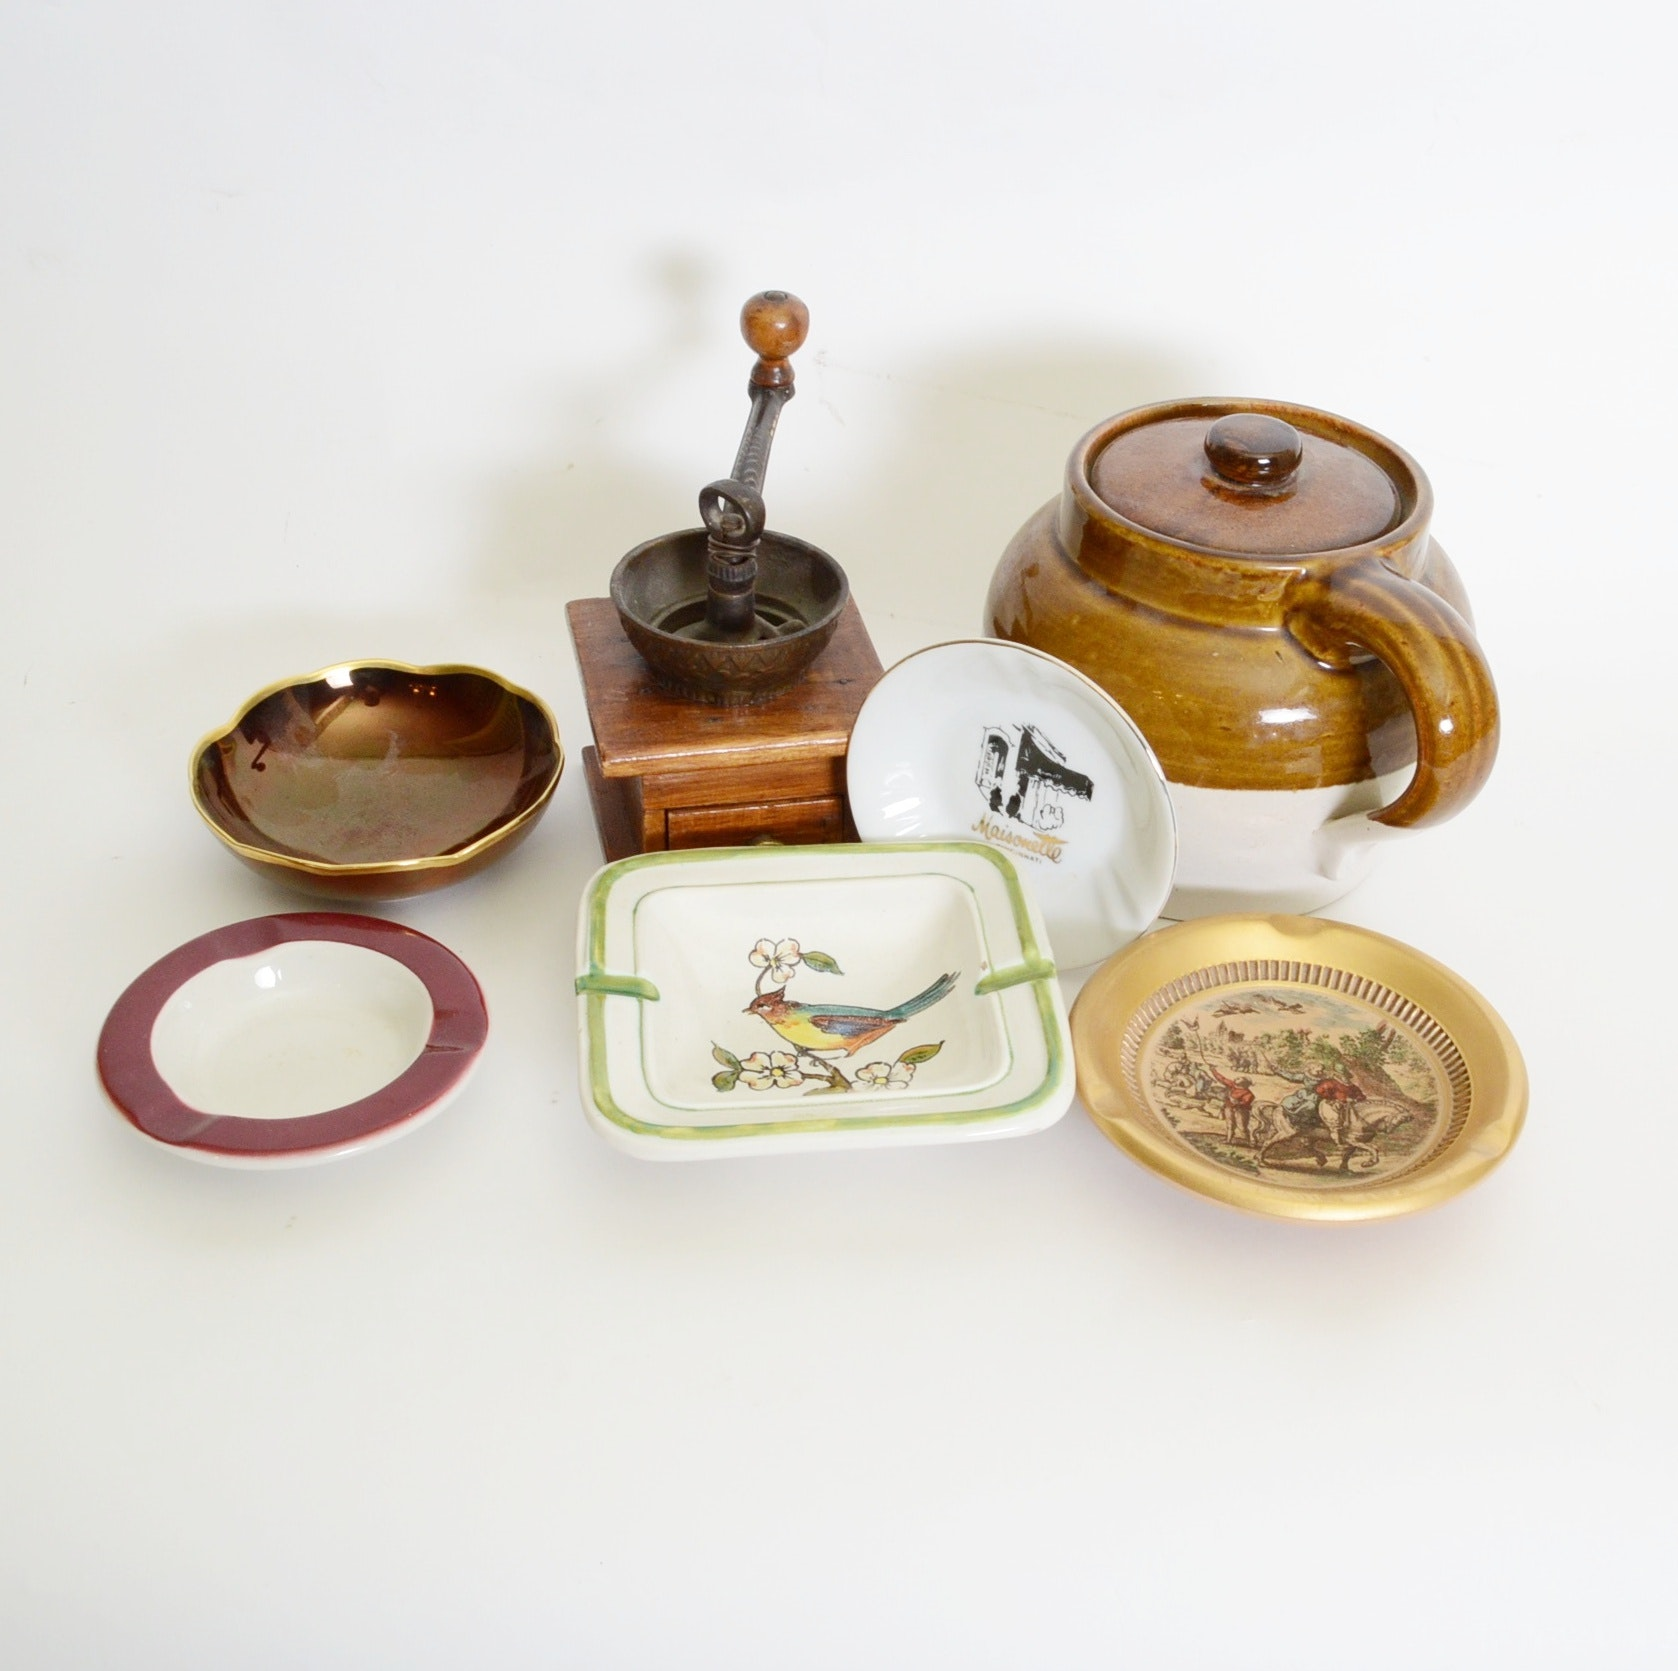 Early Coffee Grinder, Bean Pot and Trinket Dishes